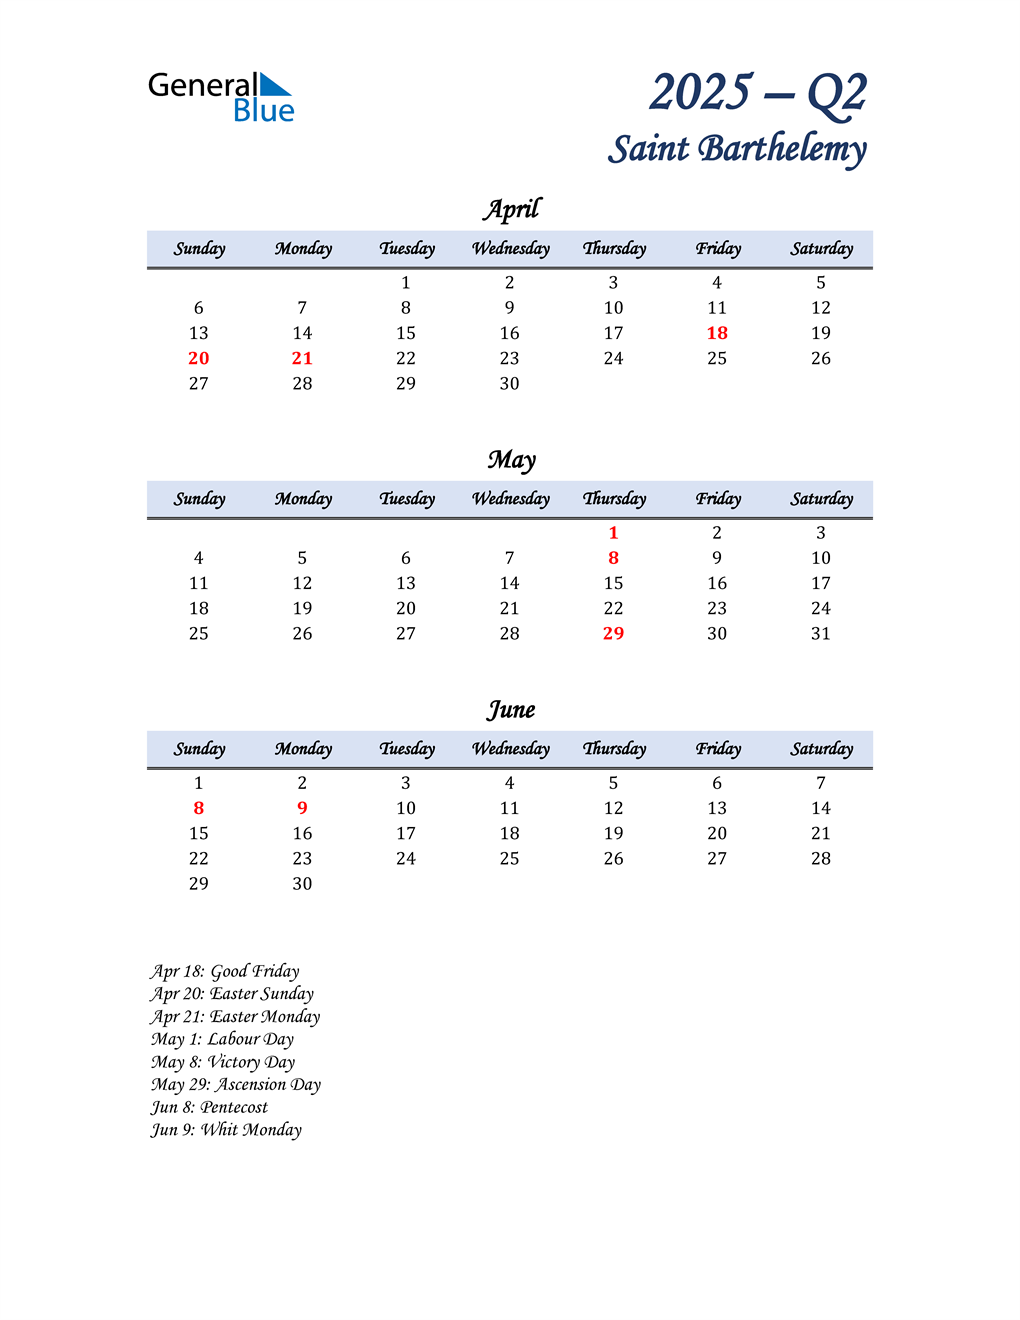 April, May, and June Calendar for Saint Barthelemy